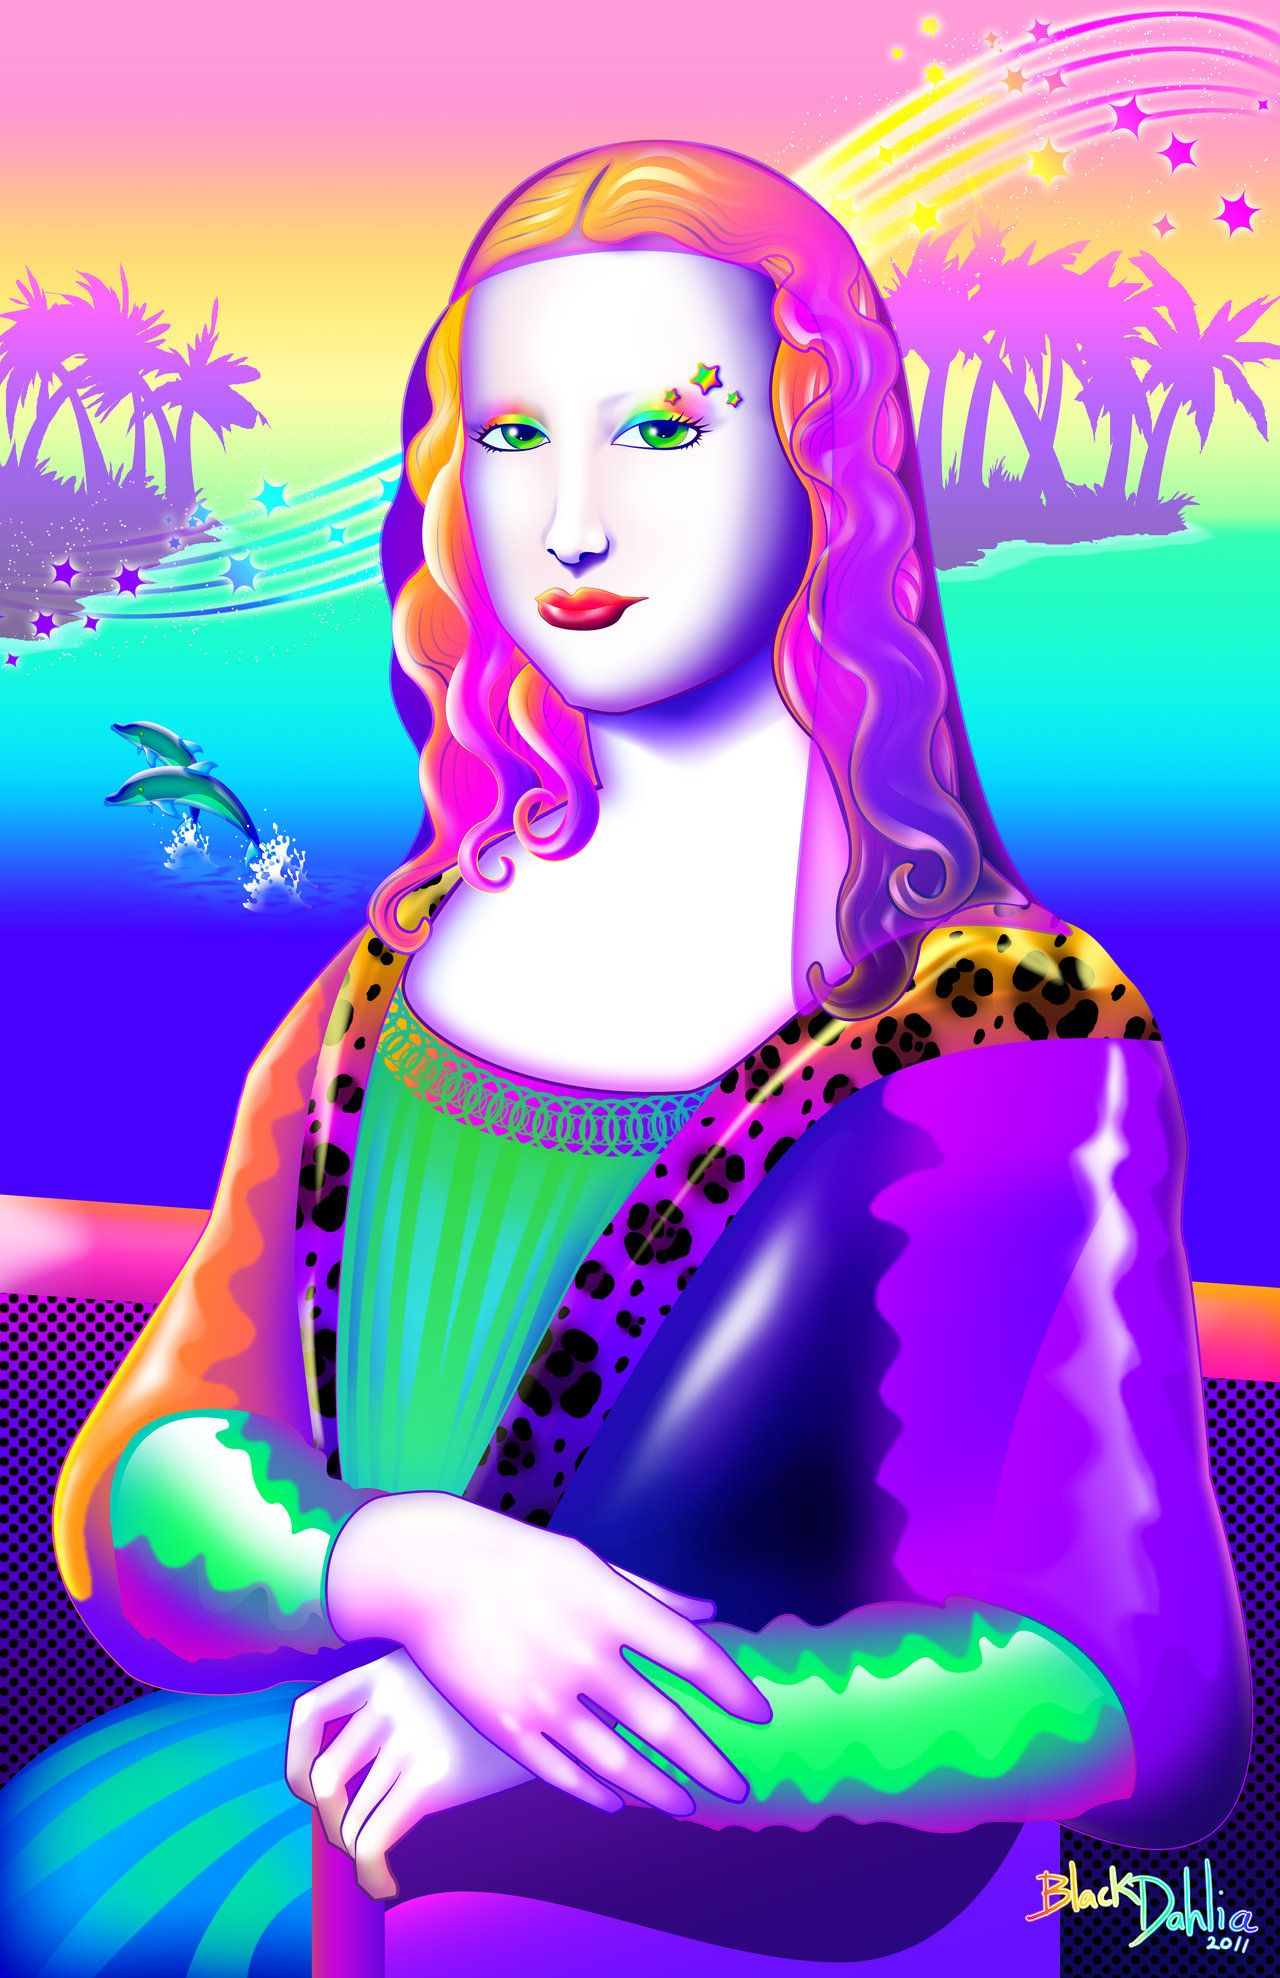 Free Lisa Frank Wallpaper WallpaperSafari